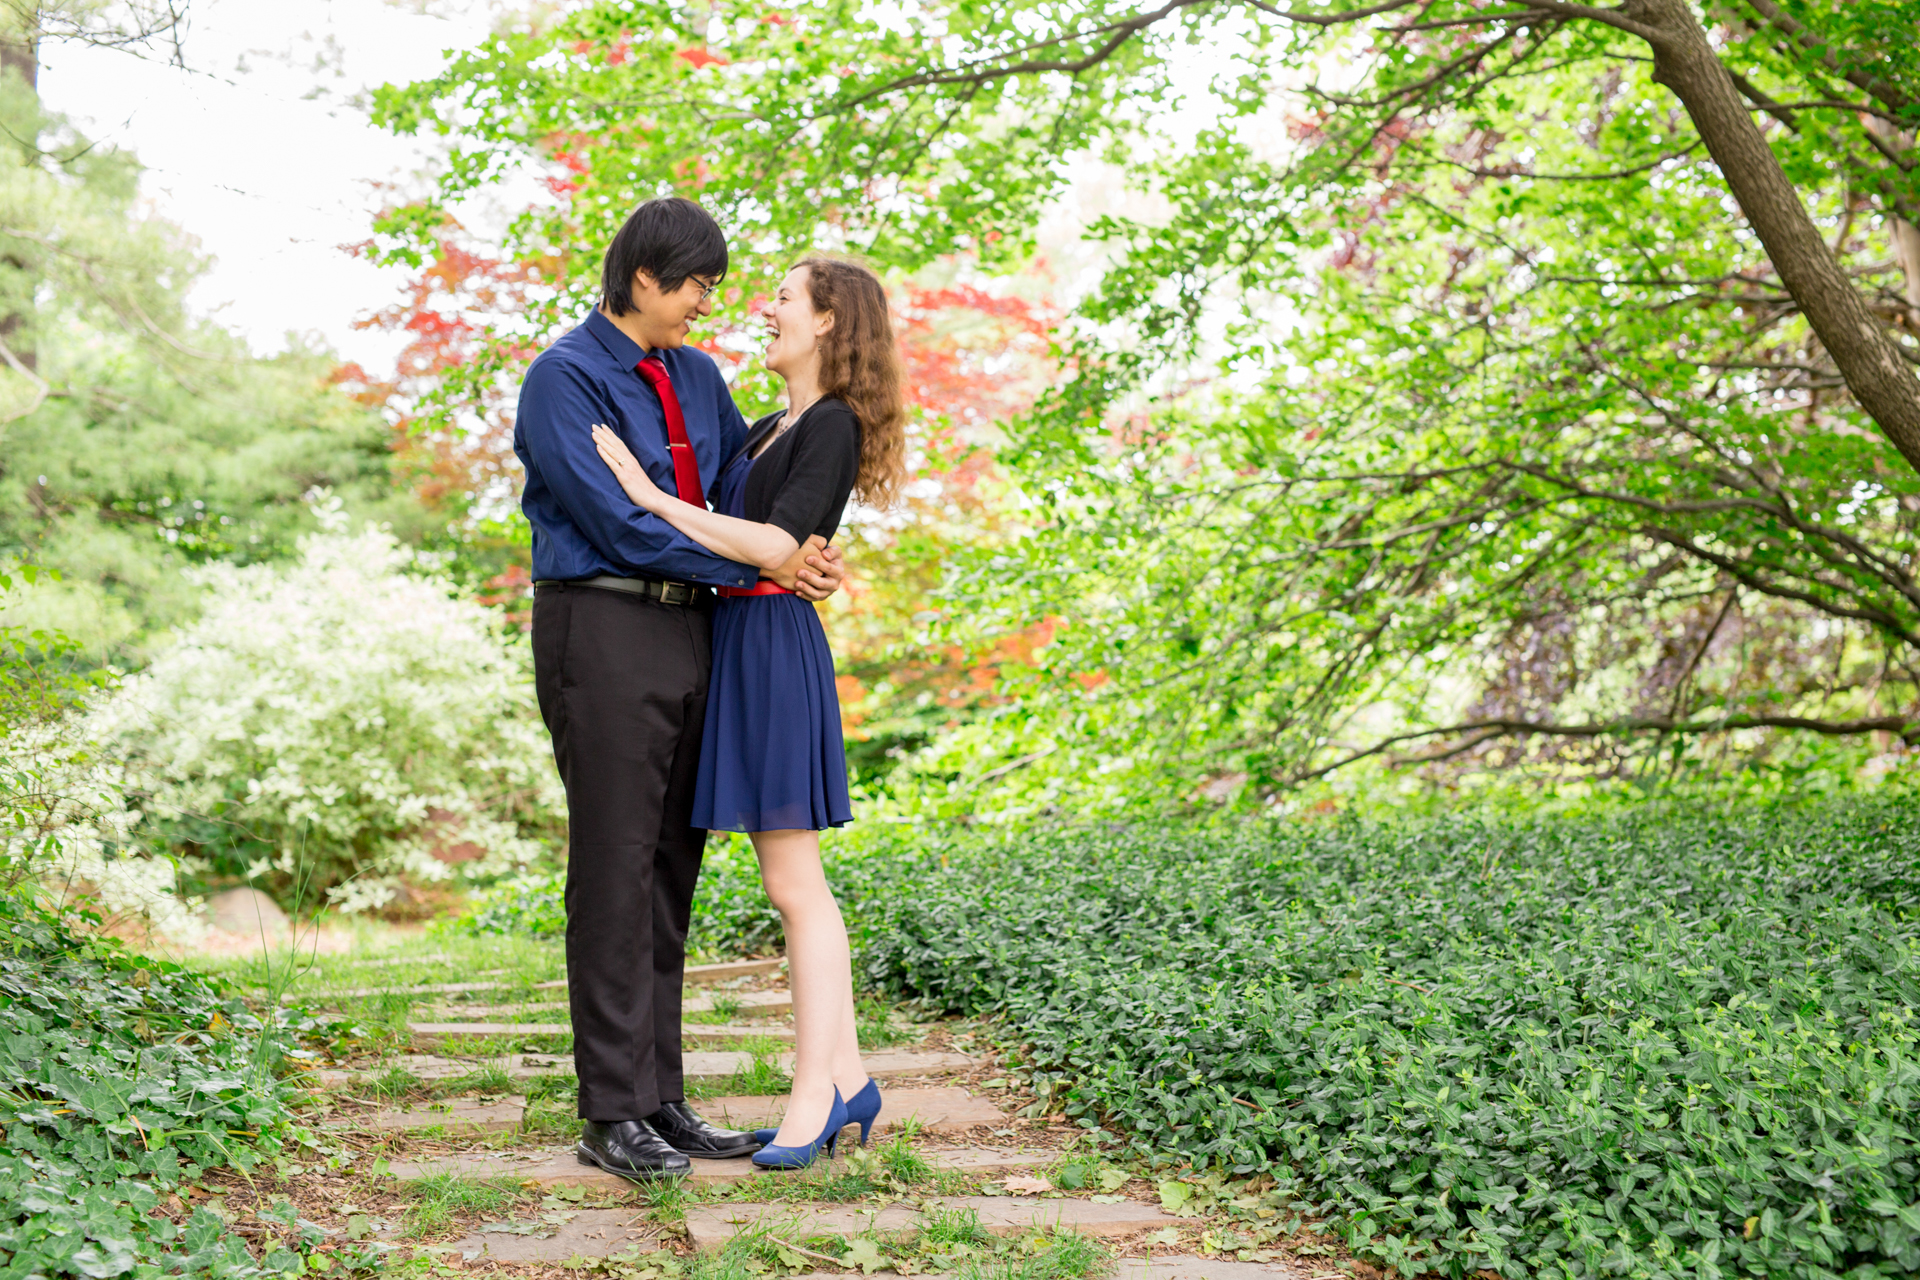 luthy botanical gardens greenhouse engagement biracial couple peoria centrail illinois wedding photographer photographers bloomington normal illinois valley lasalle peru ottawa-4.jpg